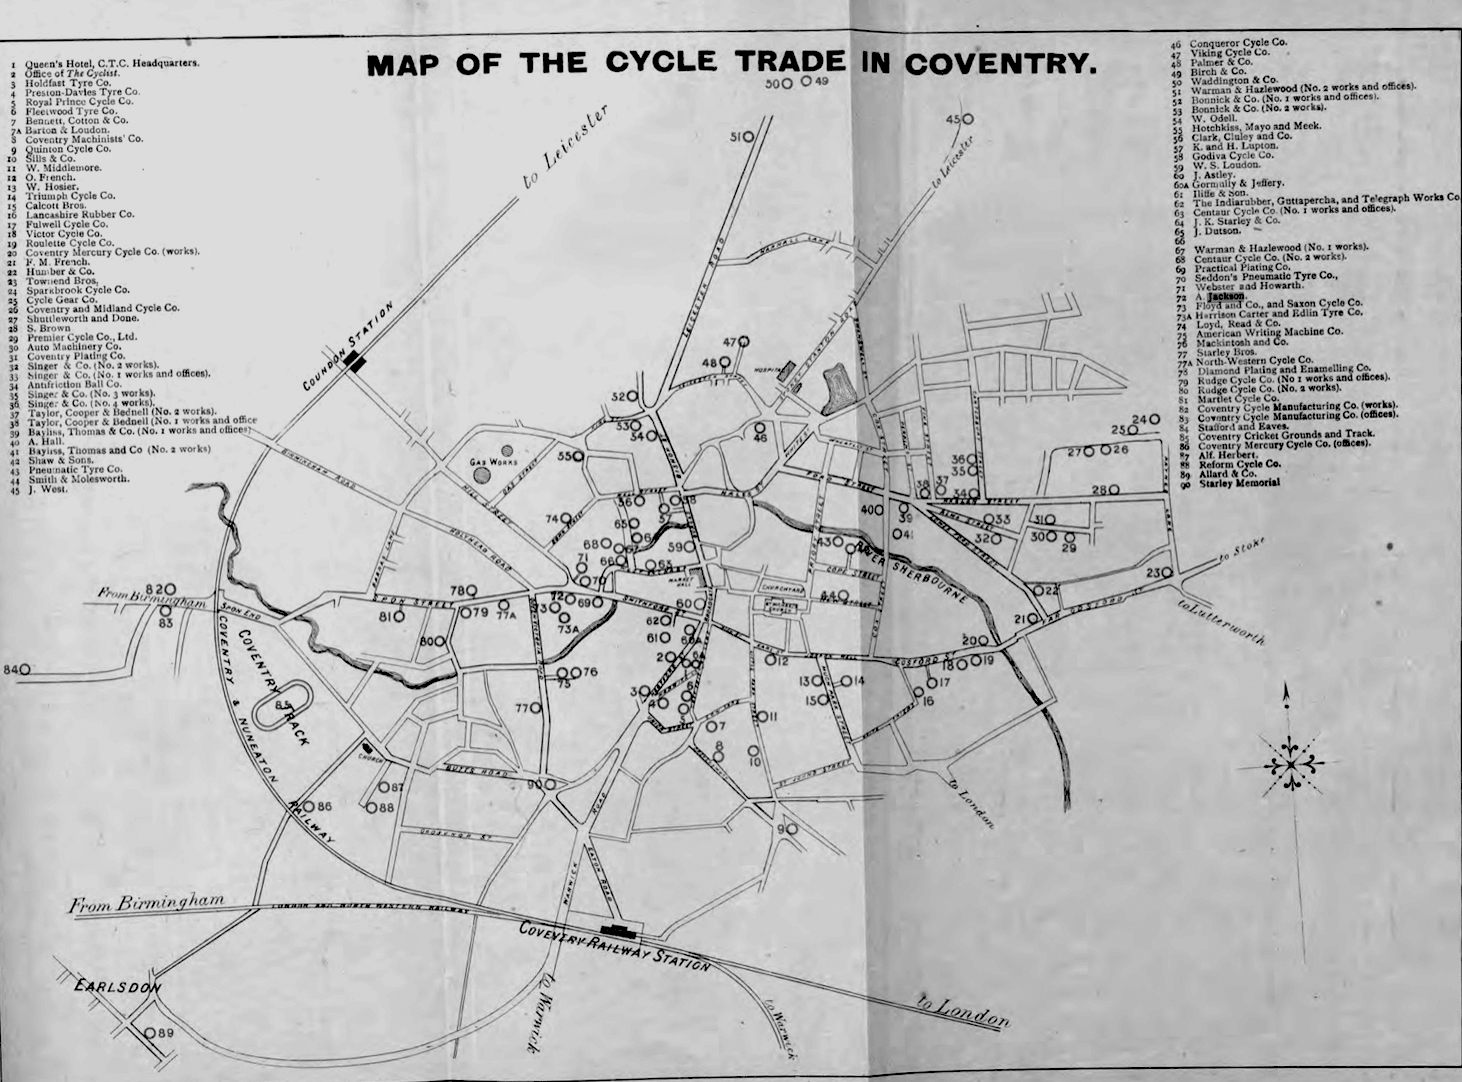 1893-cycle-companies-coventry